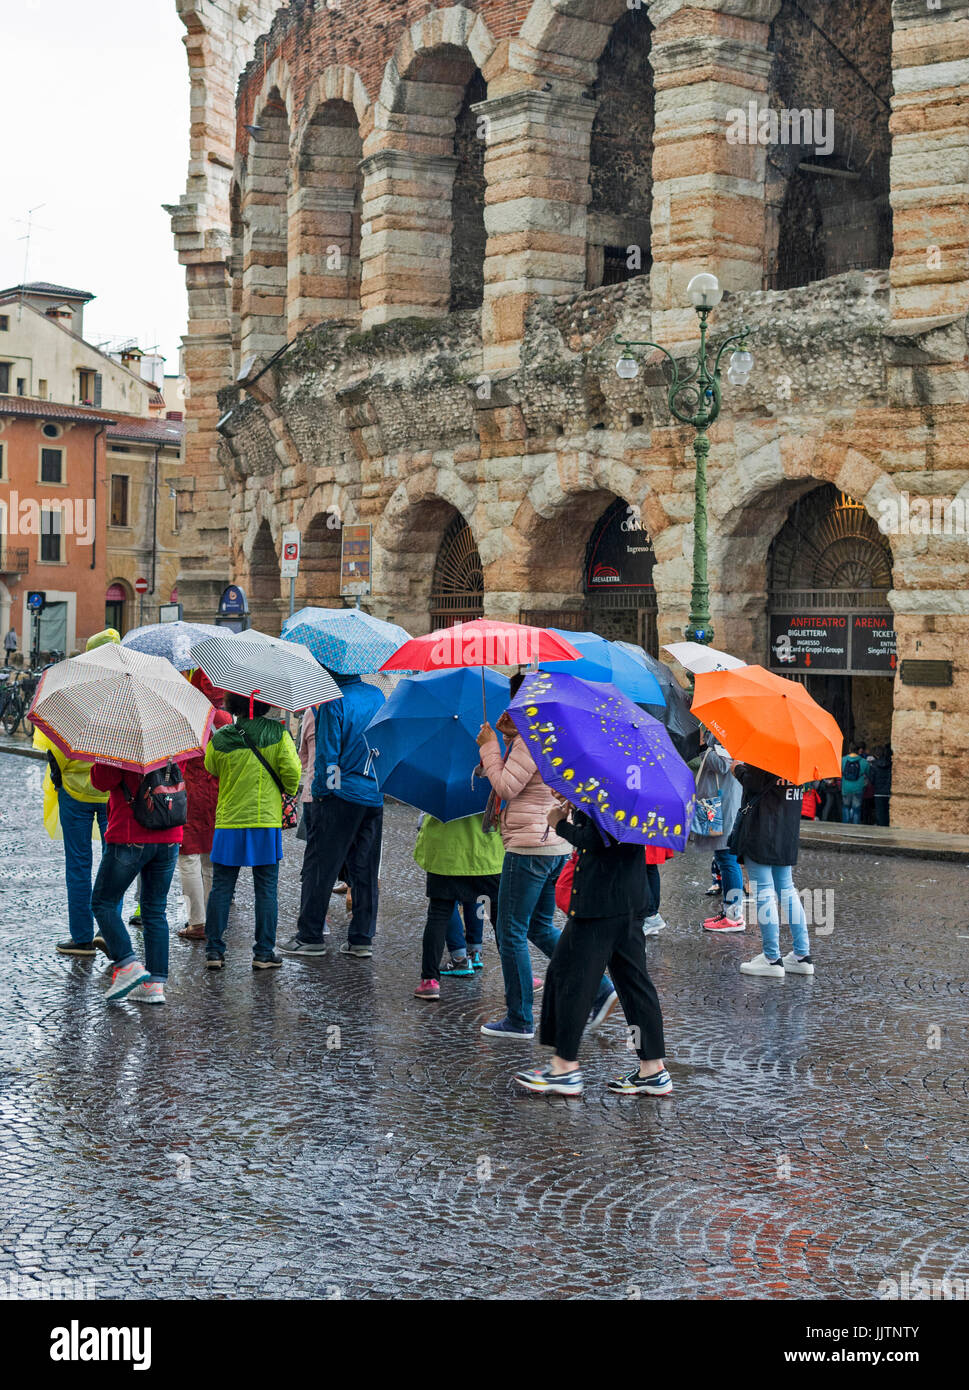 VERONA ITALY THE ARENA ON A RAINY DAY MULTI COLOURED UMBRELLAS ON SHOW - Stock Image